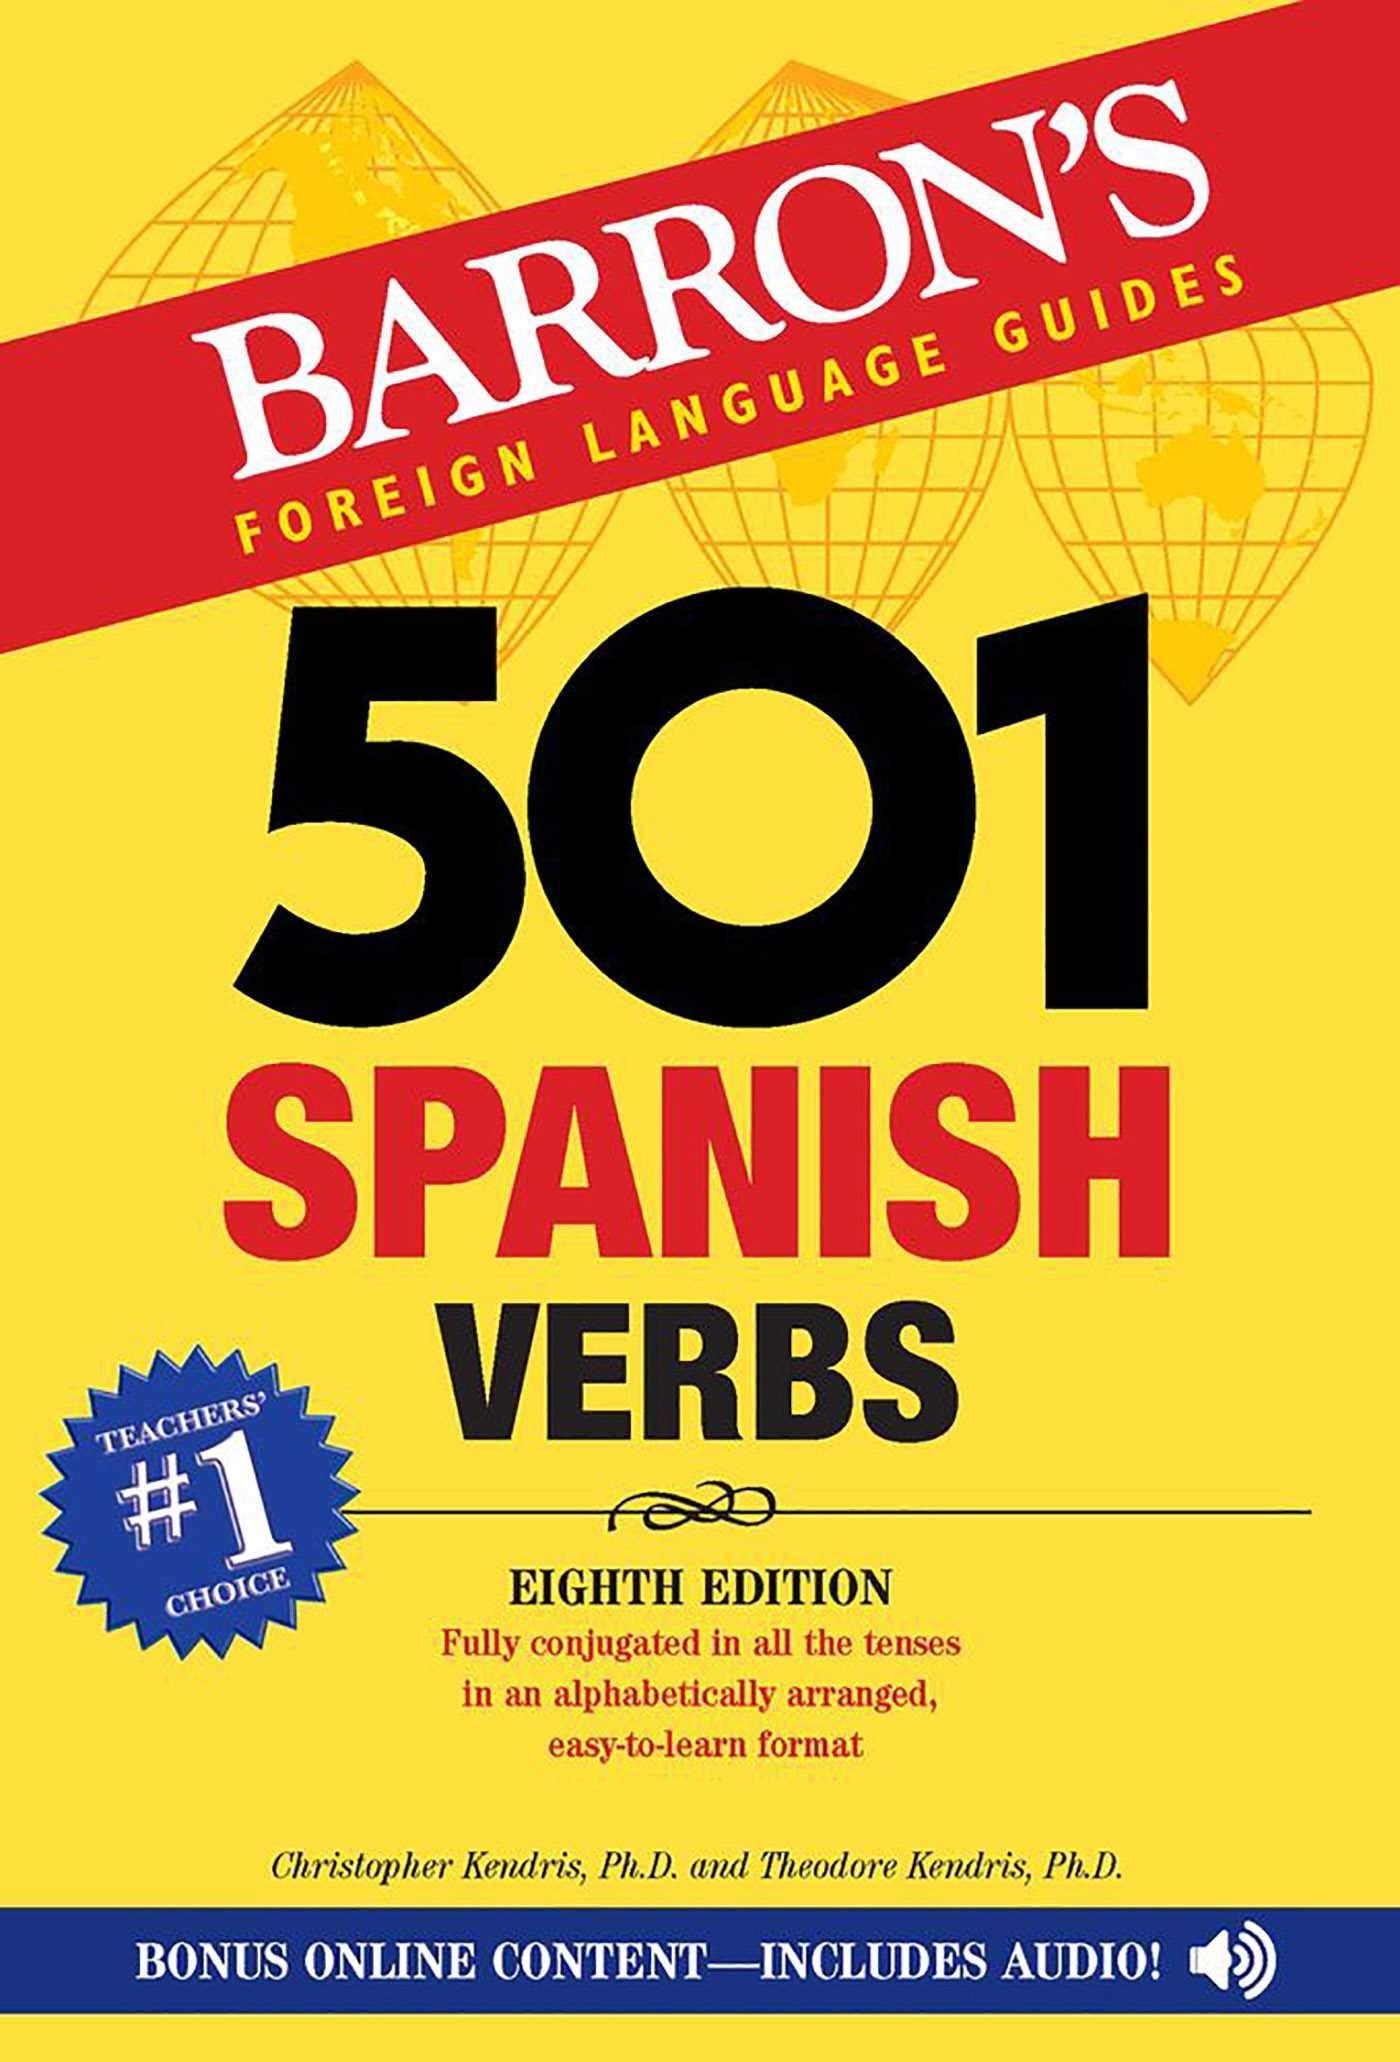 501 Spanish Verbs (Barron's foreign language verbs) (Inglés) Tapa blanda – 1 jun 2017 Christopher Kendris Theodore Kendris Barrons Educational Serie 143800916X